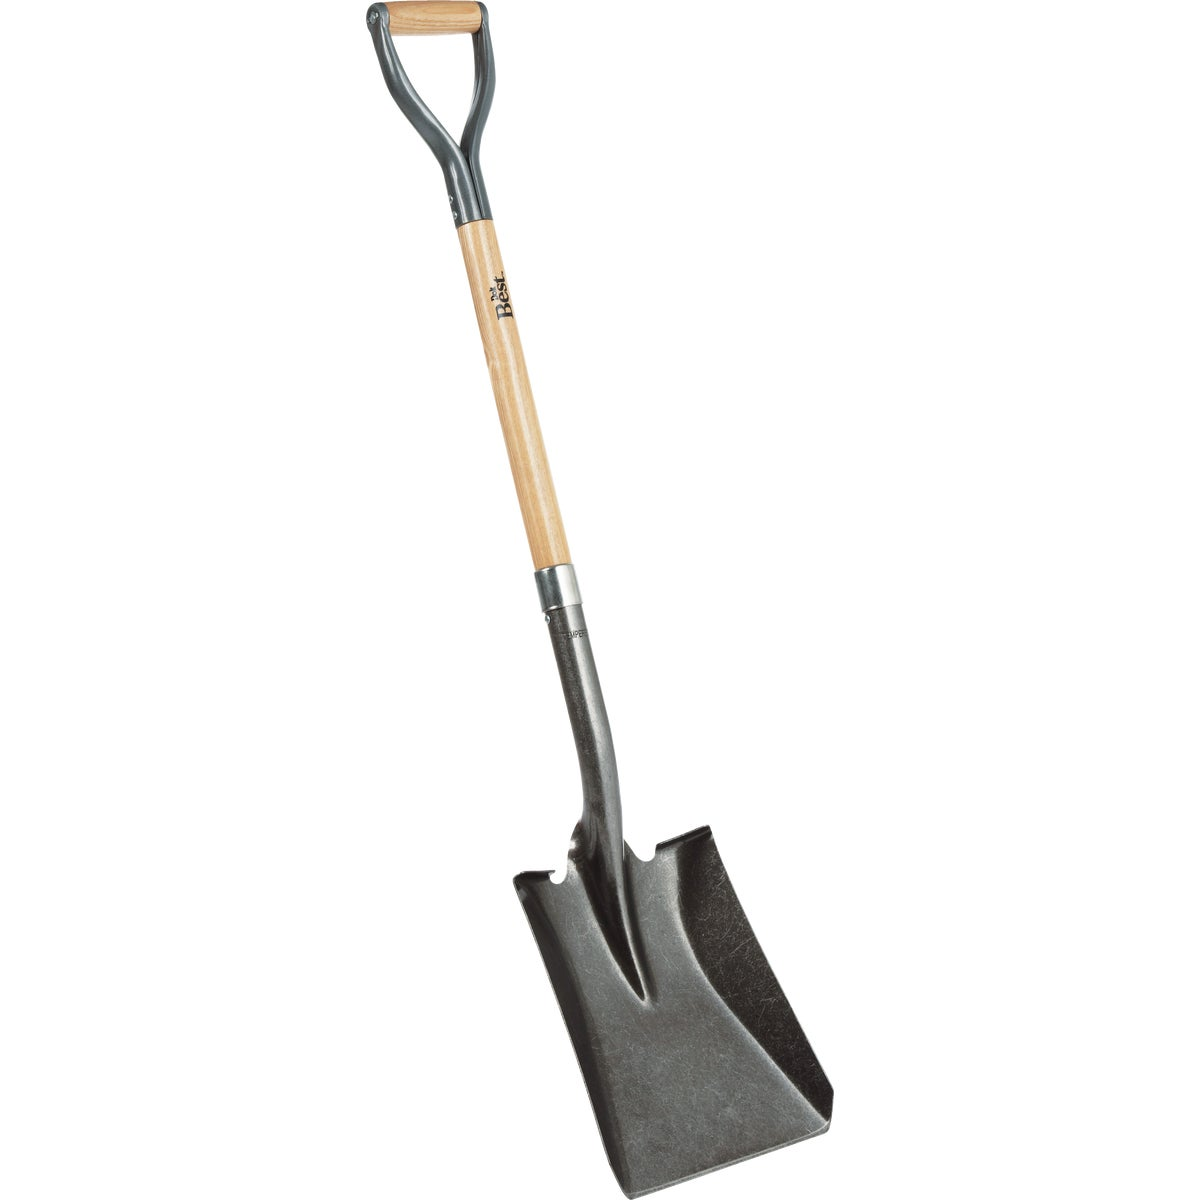 D-HDL SQ PT SHOVEL - YN-8SF3-5Y by Do it Best